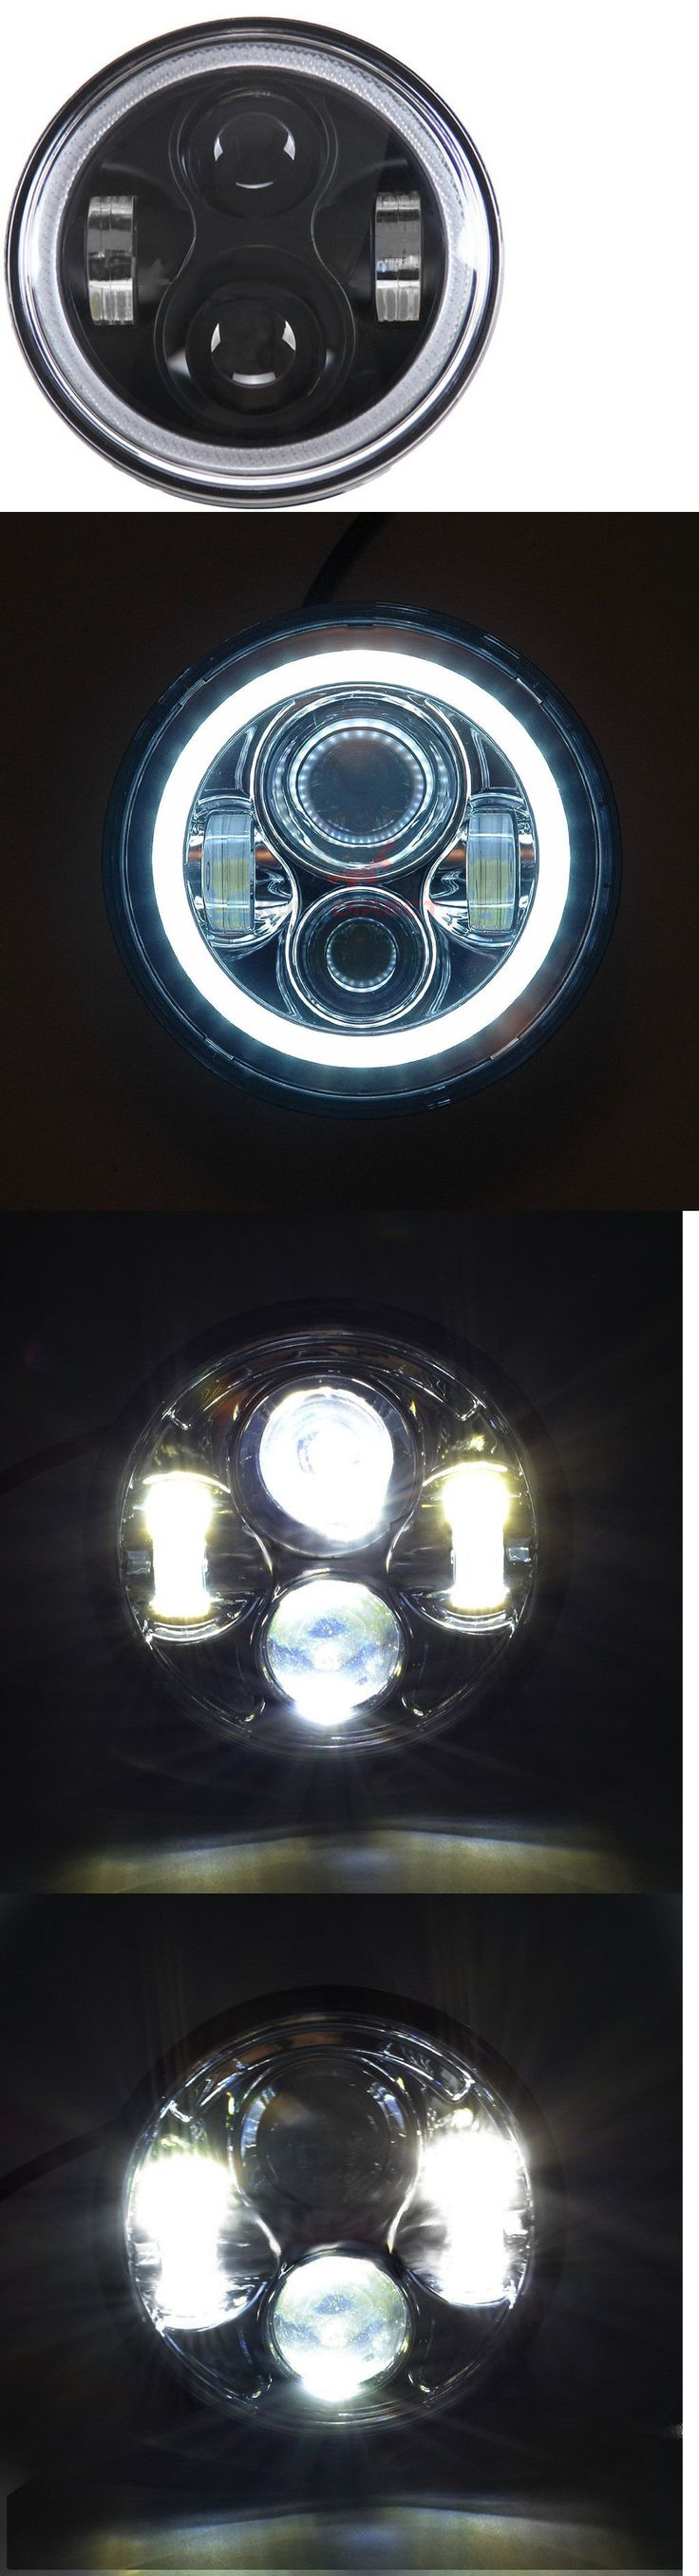 motorcycle parts: Light-Haus 5 3 4 Black Led Daymaker Headlight W Halo Ring - Hd Sportster Dyna -> BUY IT NOW ONLY: $99.99 on eBay!